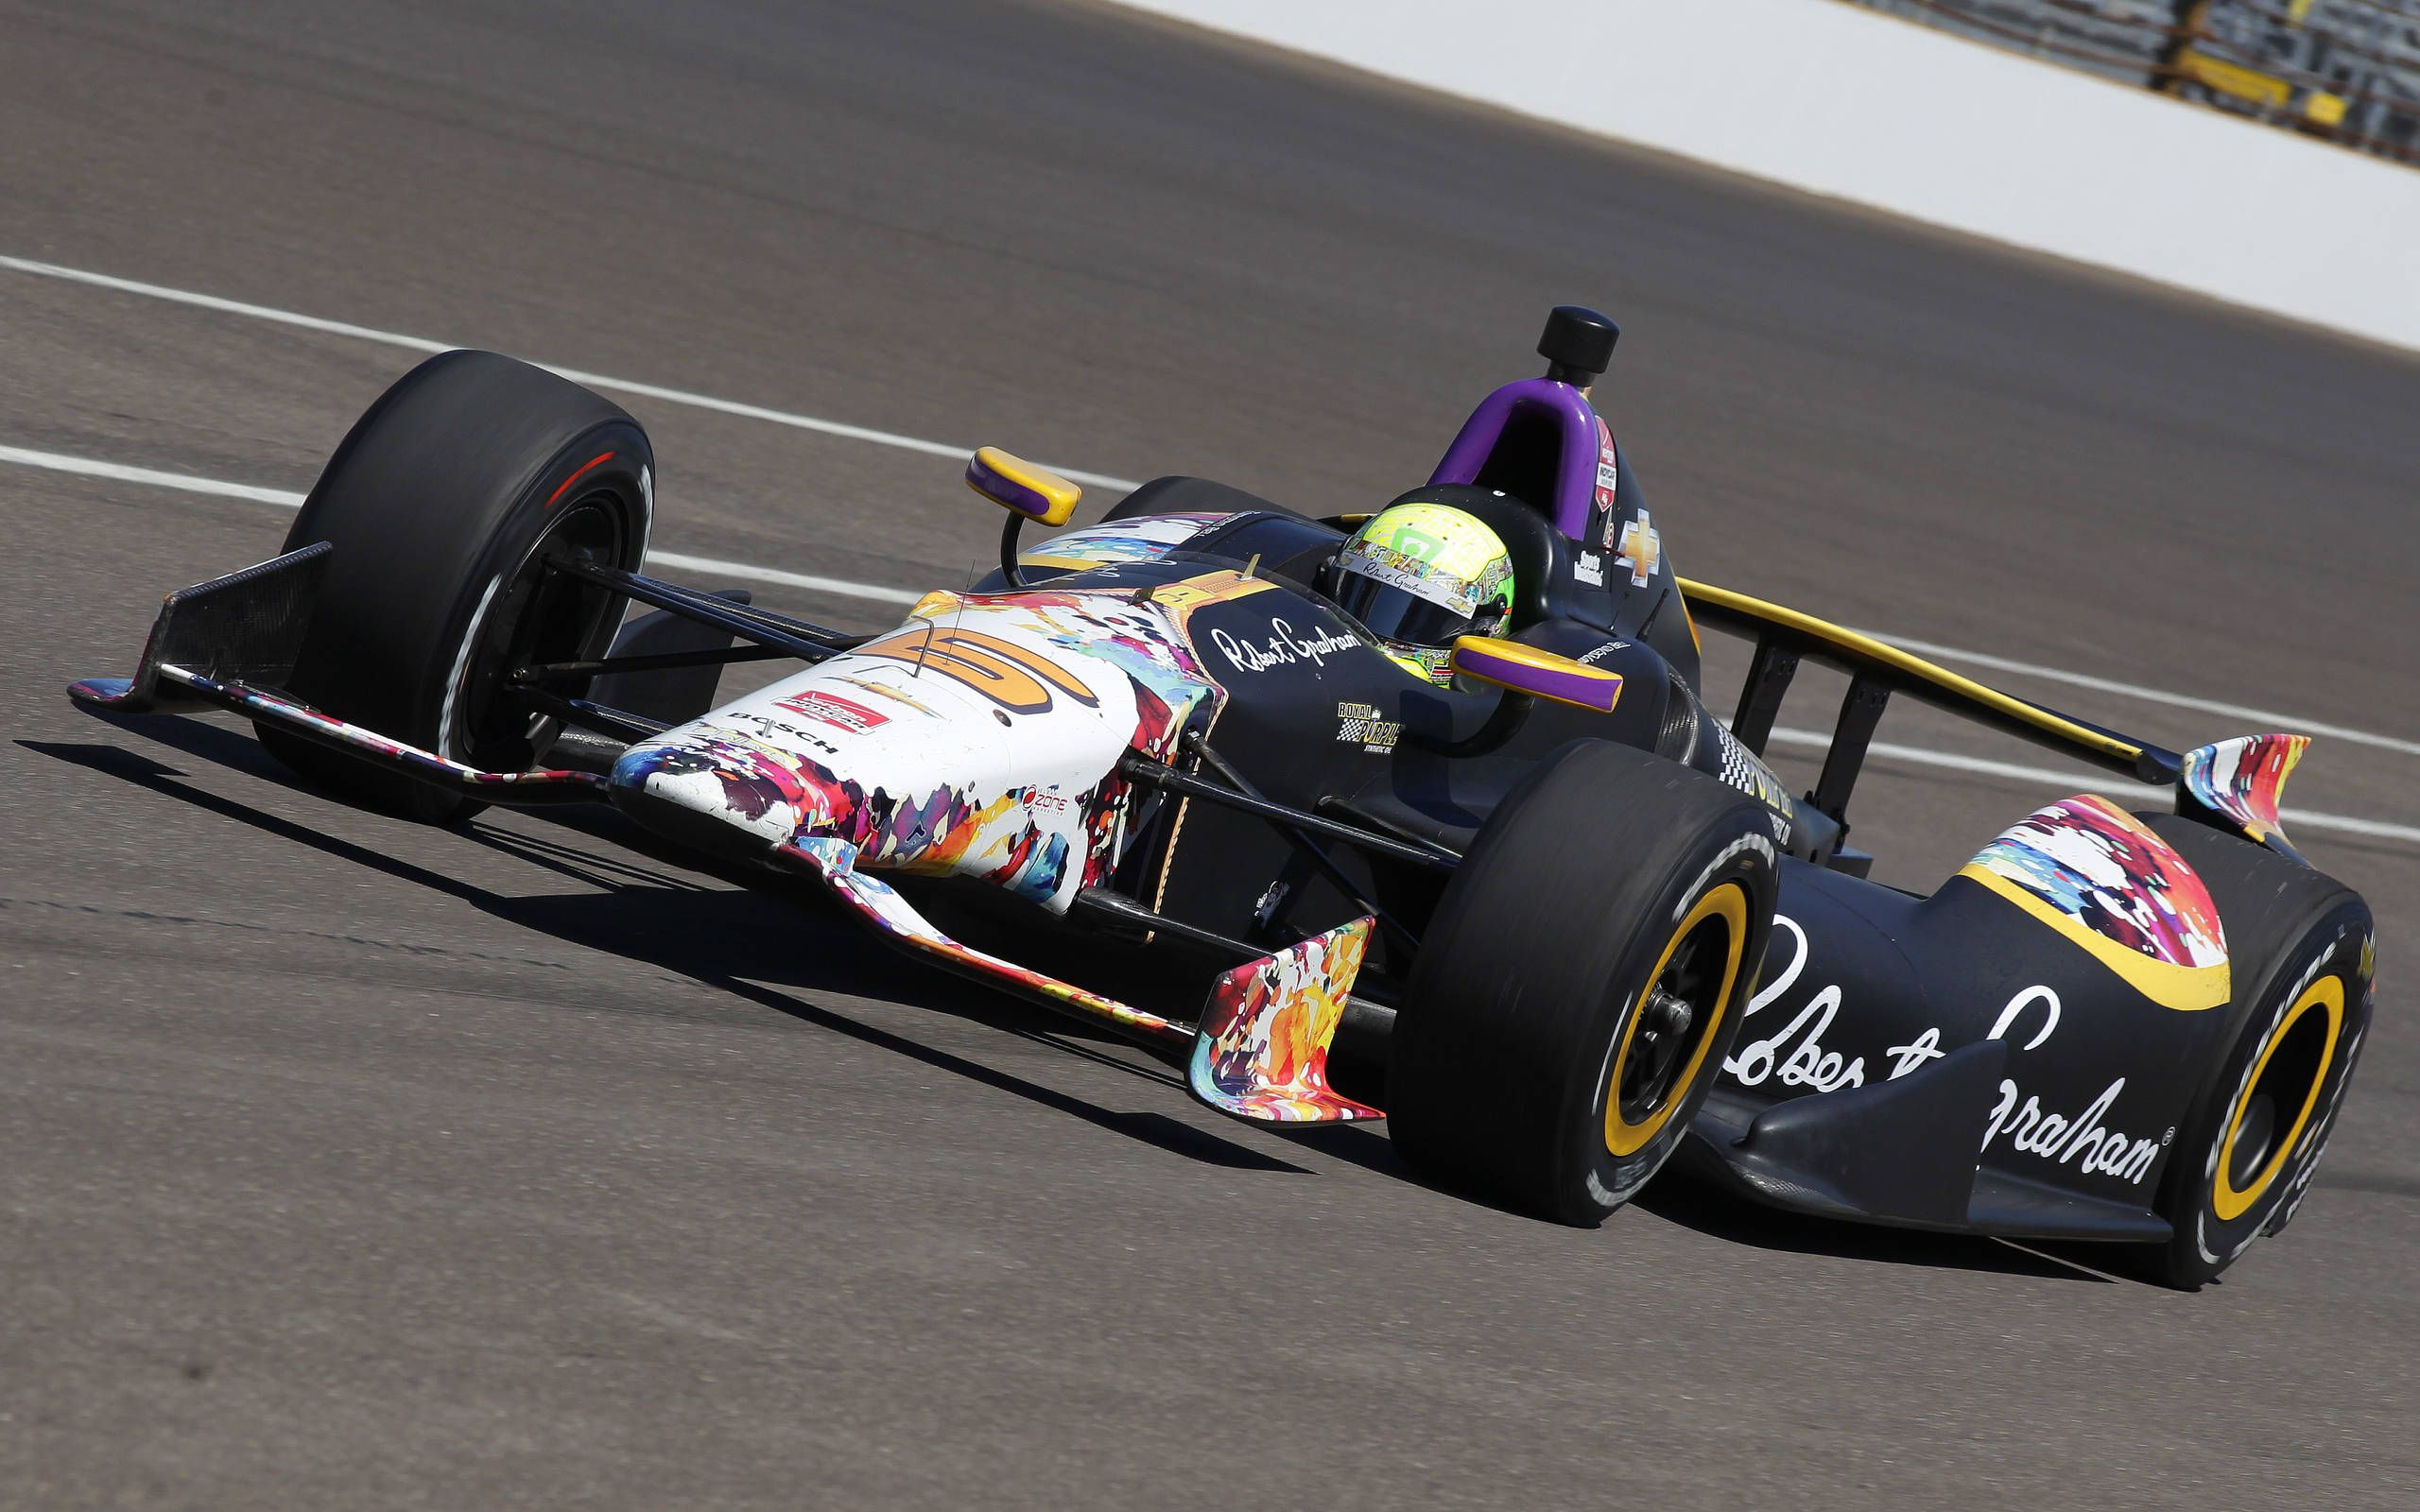 townsend bell to race in indy 500 townsend bell to race in indy 500